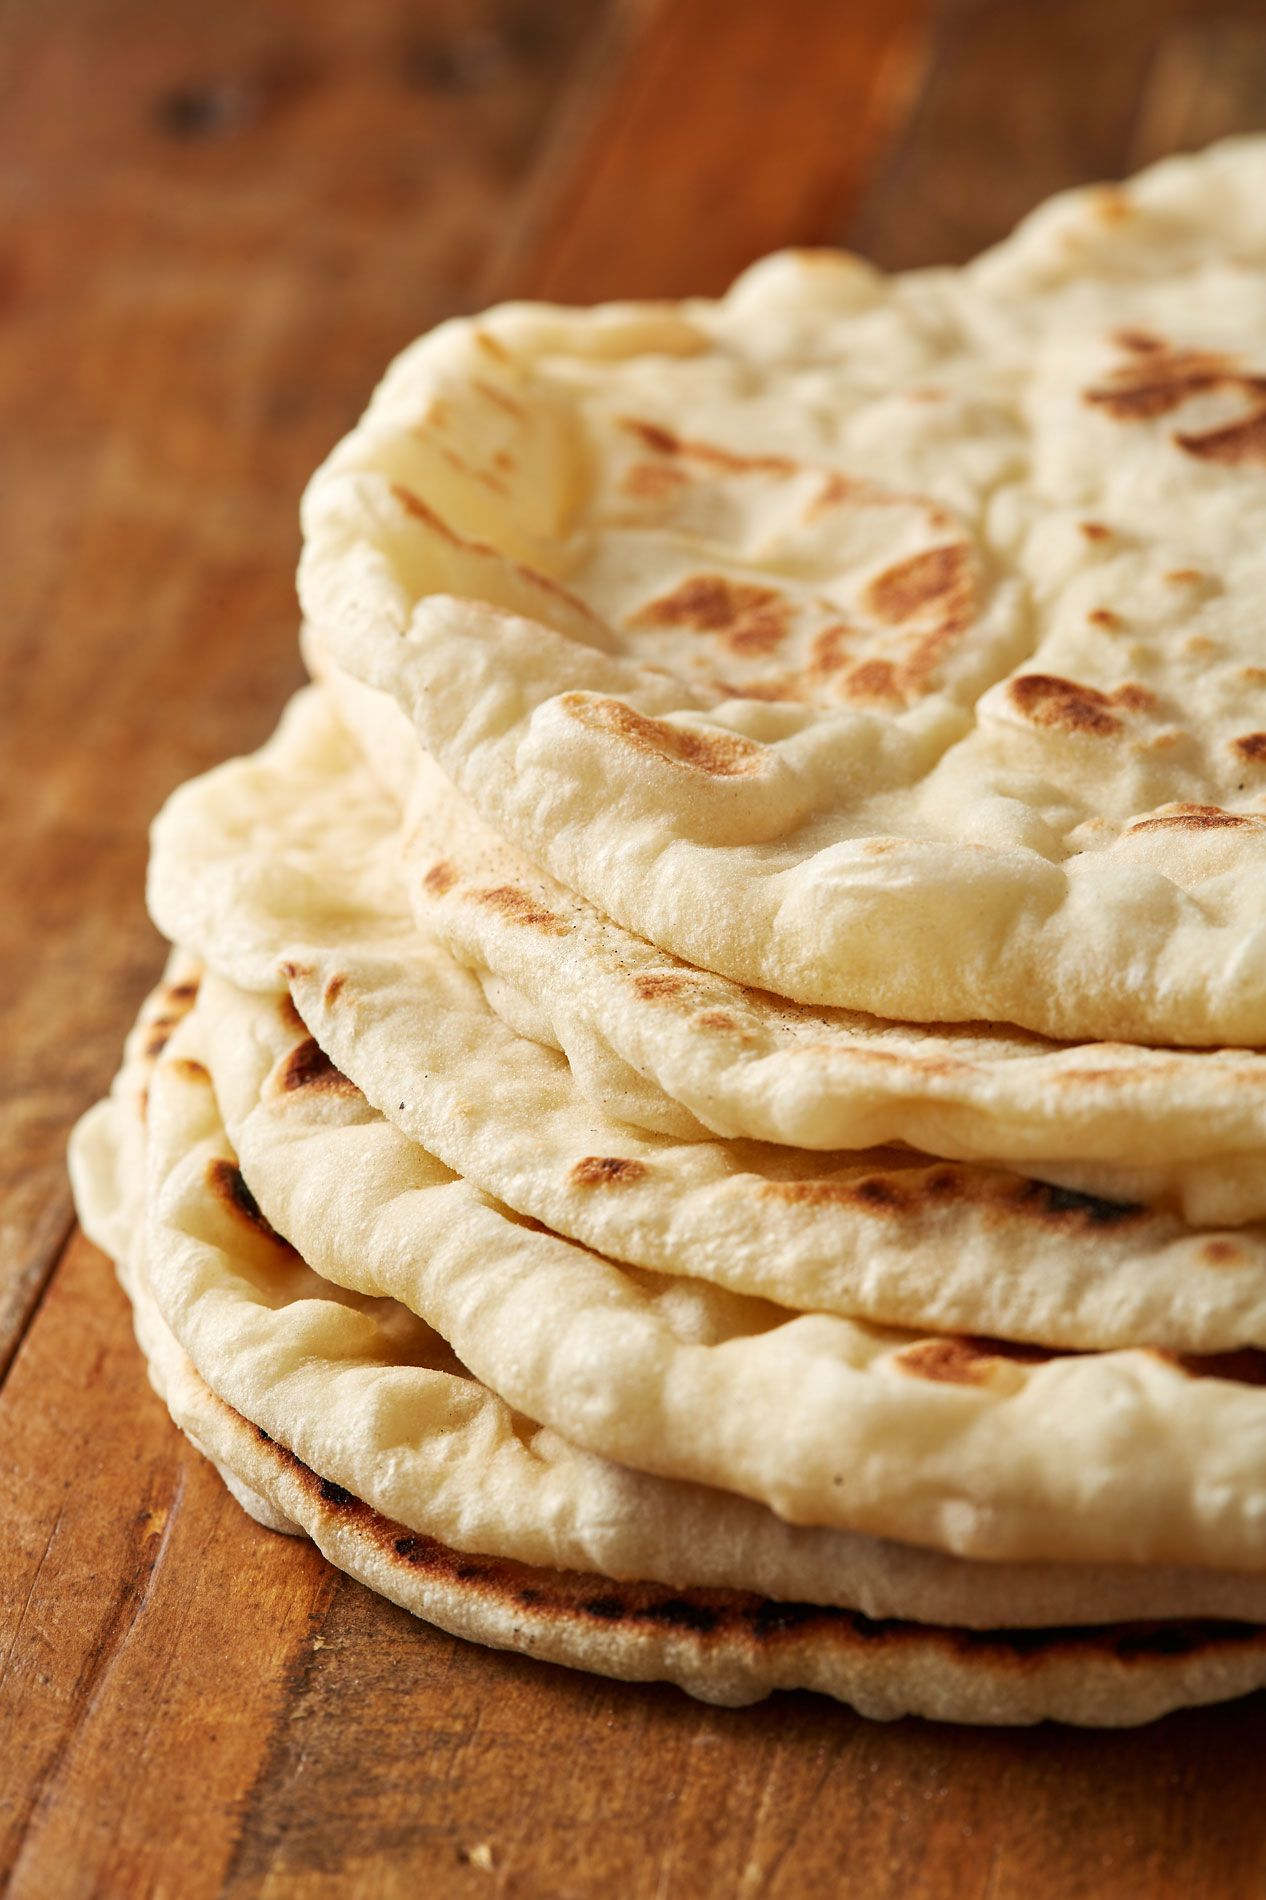 Best Pita Bread Recipe How To Make Easy Homemade Pita Bread